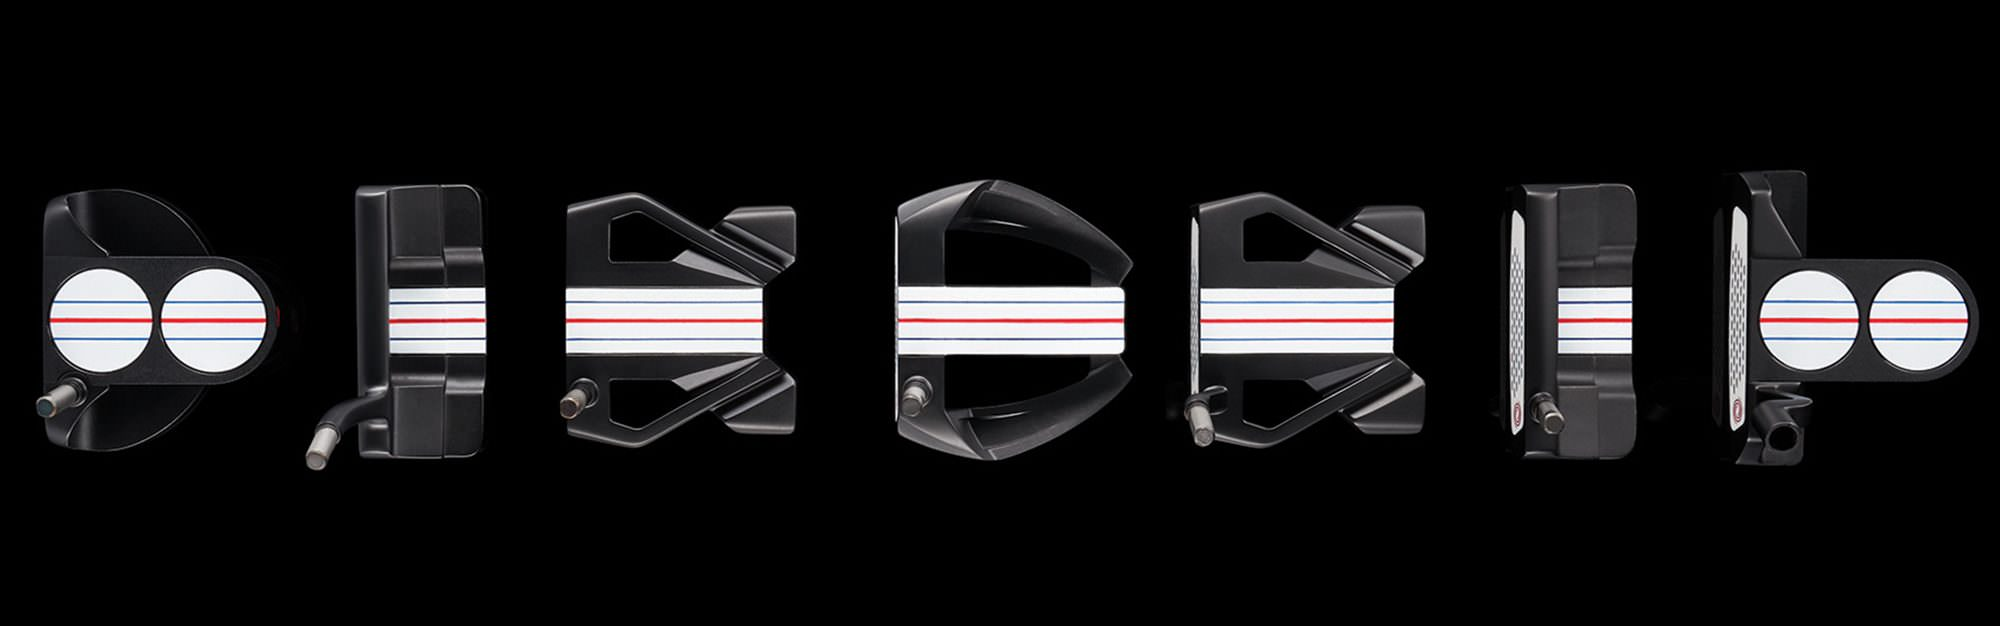 Is three the magic number? We put Odyssey's Triple Track technology to the test